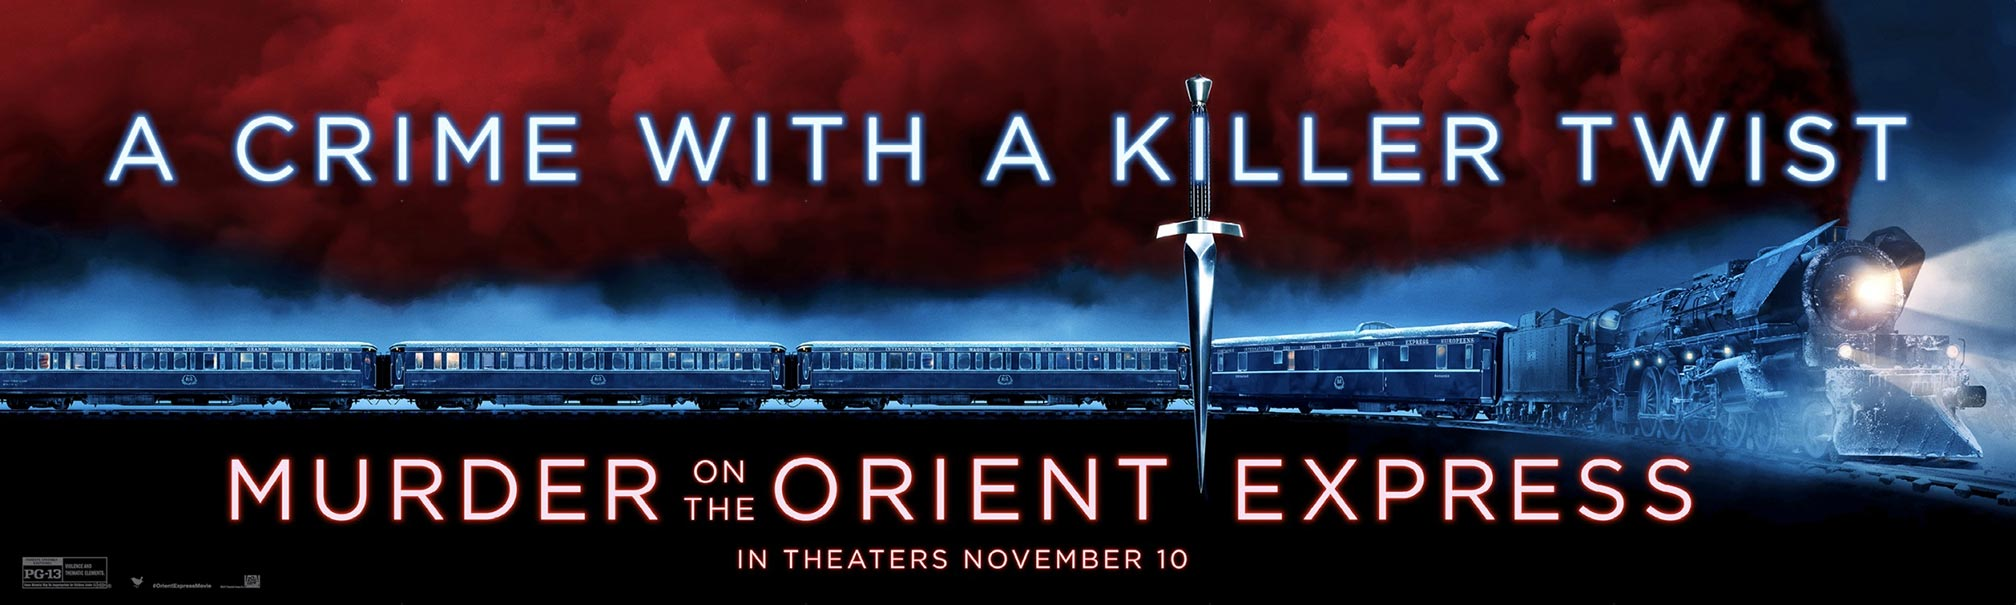 Murder on the Orient Express Poster #20